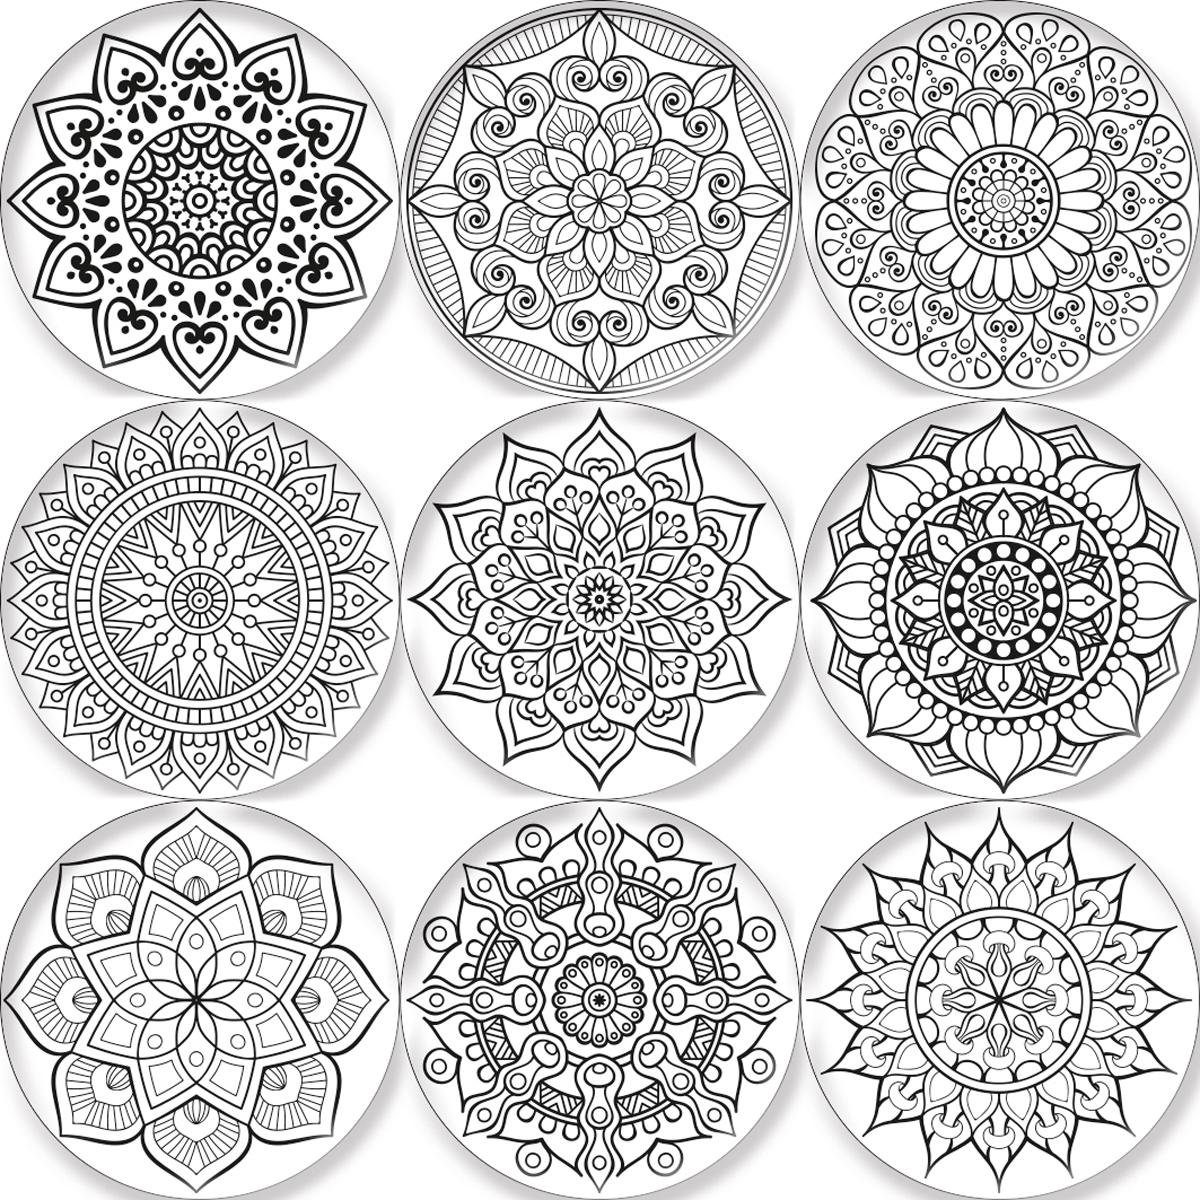 EUROGRAPHICS Magnete-Set »Indian Mandalas«, 9 Stück